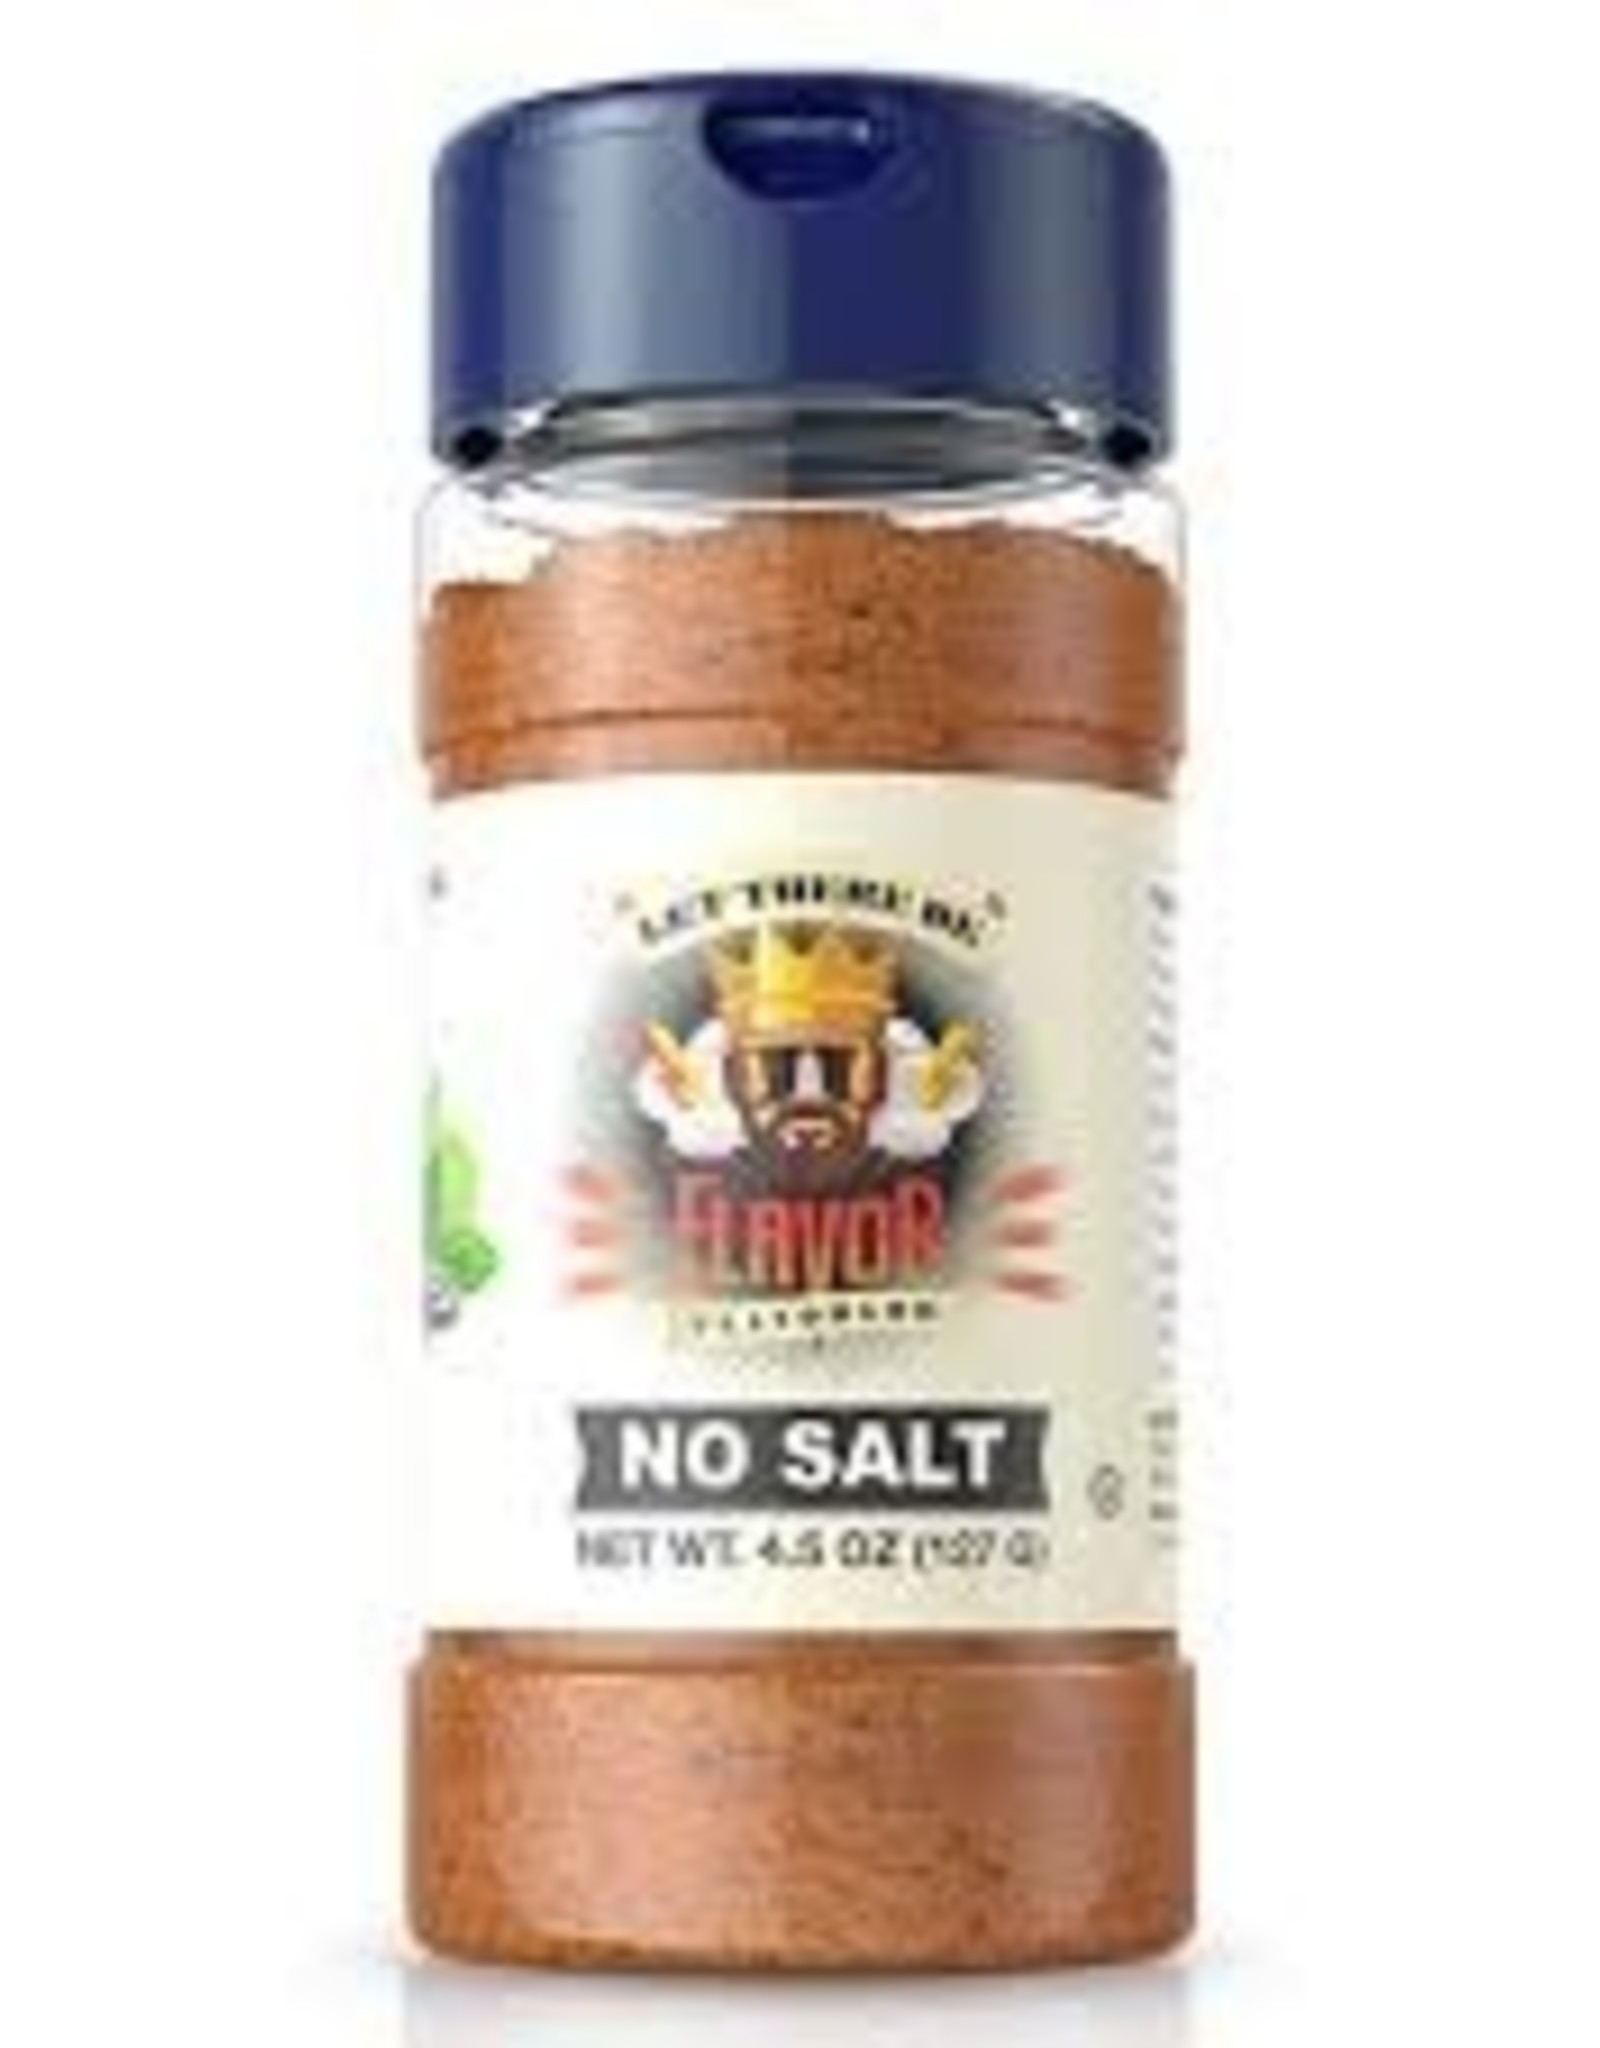 Flavor God Flavor God - No Salt